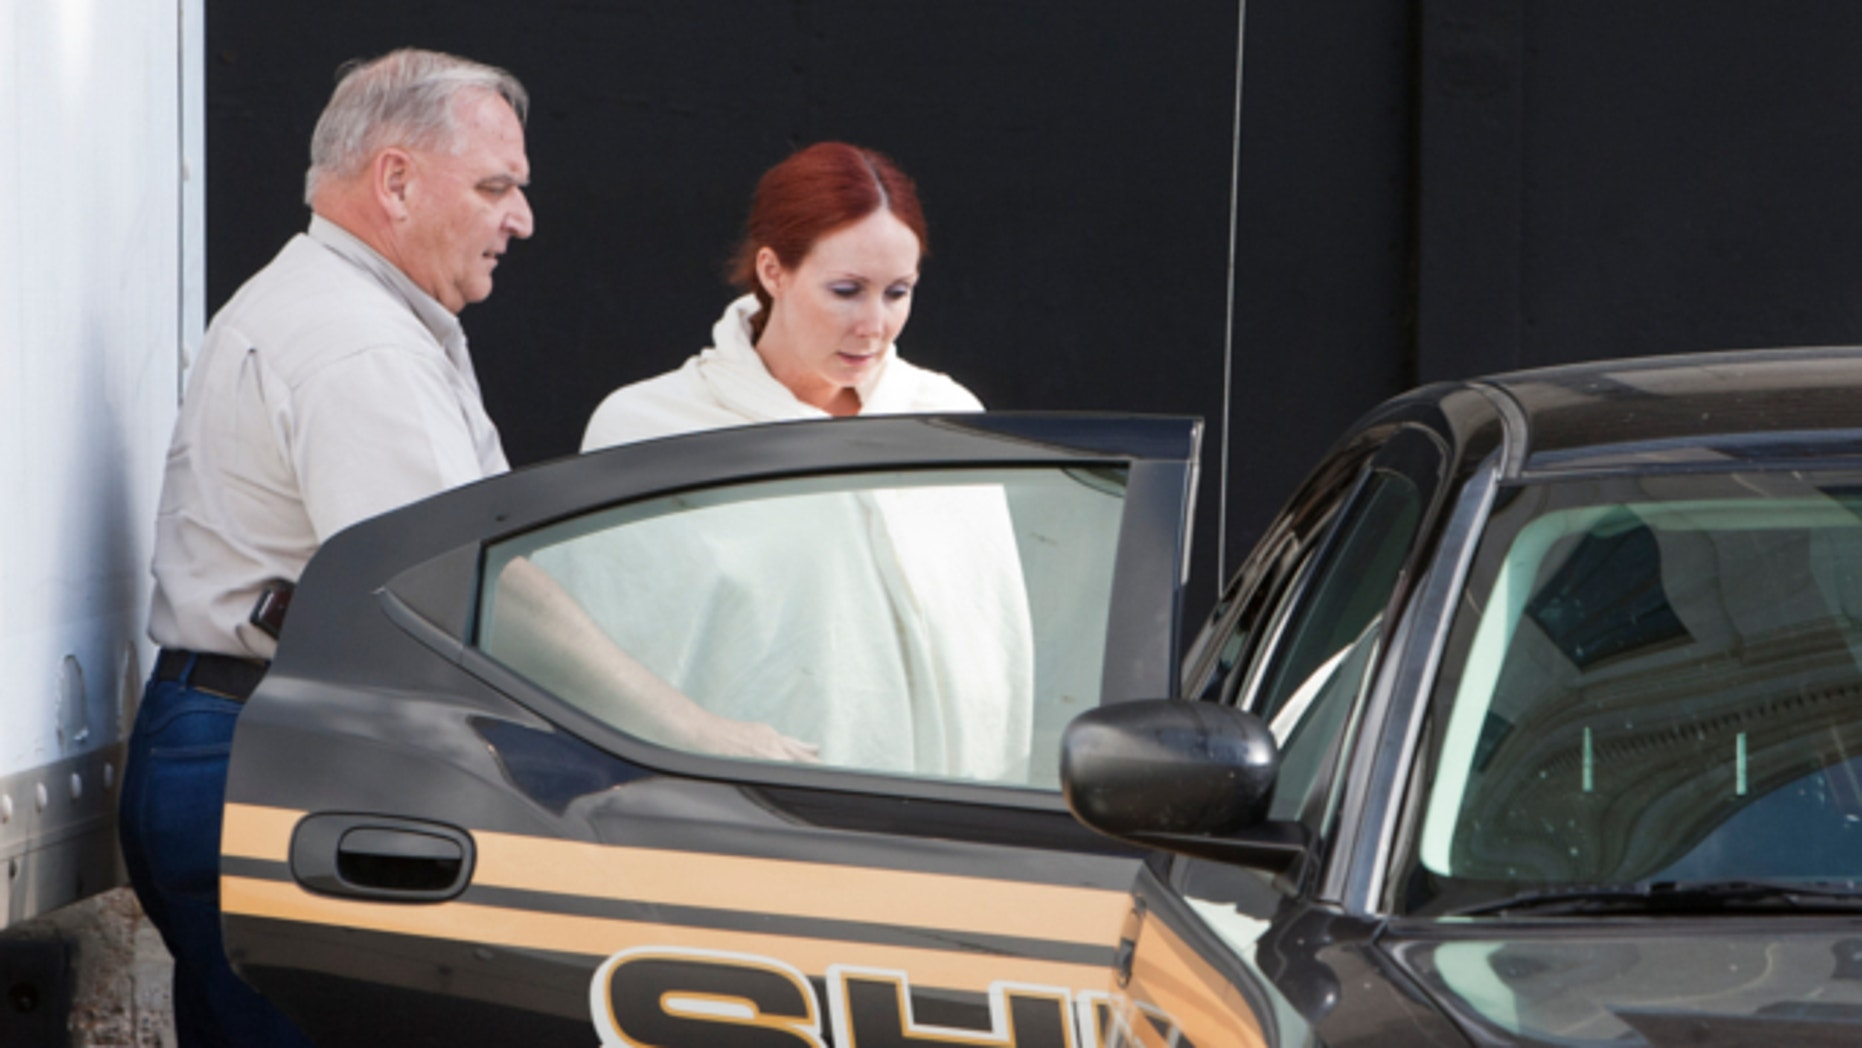 June 7, 2013: Shannon Richardson is placed into a Titus County Sheriff's car after an initial appearance at the federal building Texarkana, Texas.